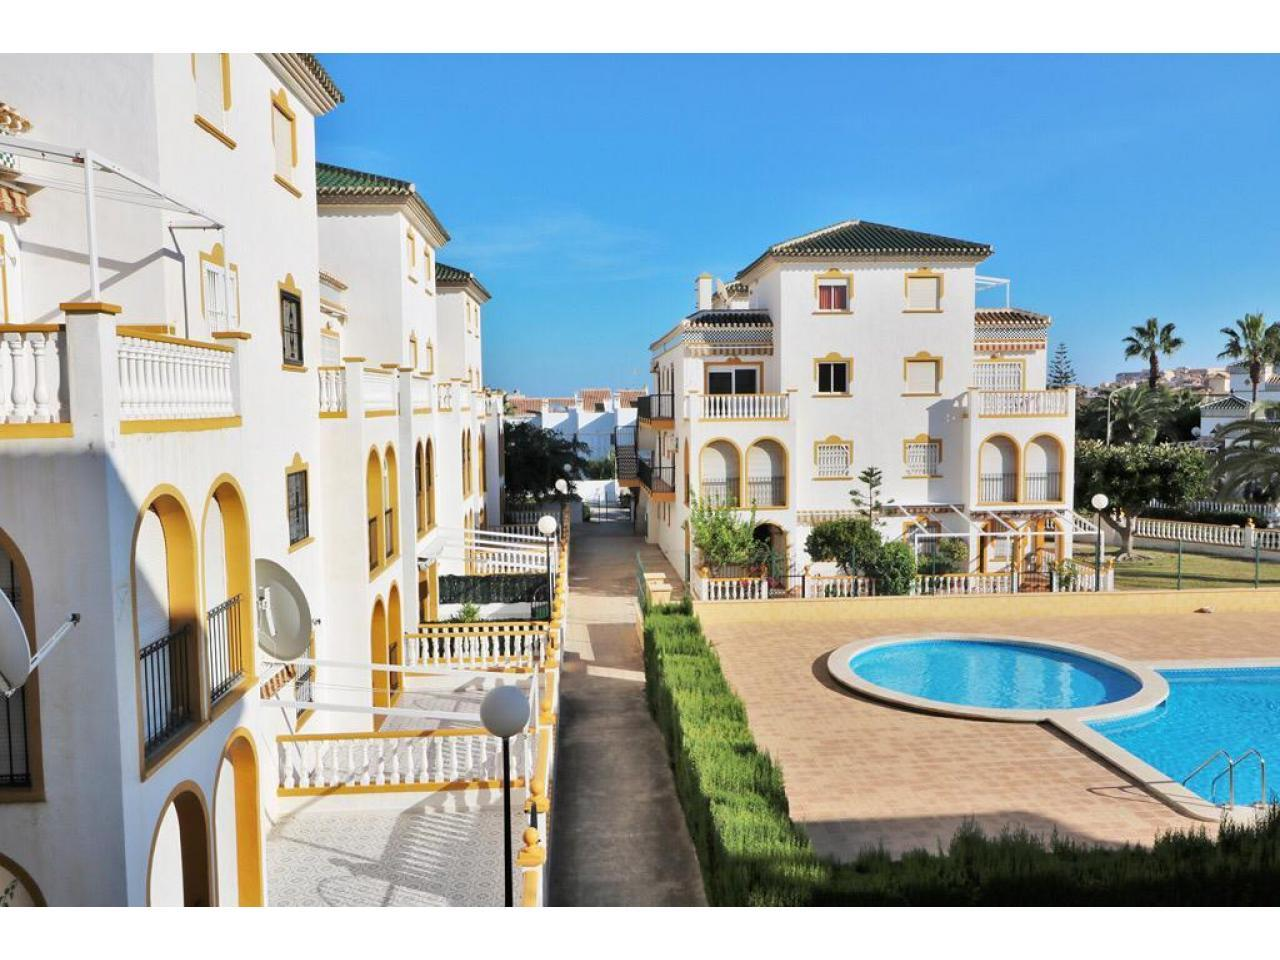 Apartment in Torrevieja, Spain for rent - 1